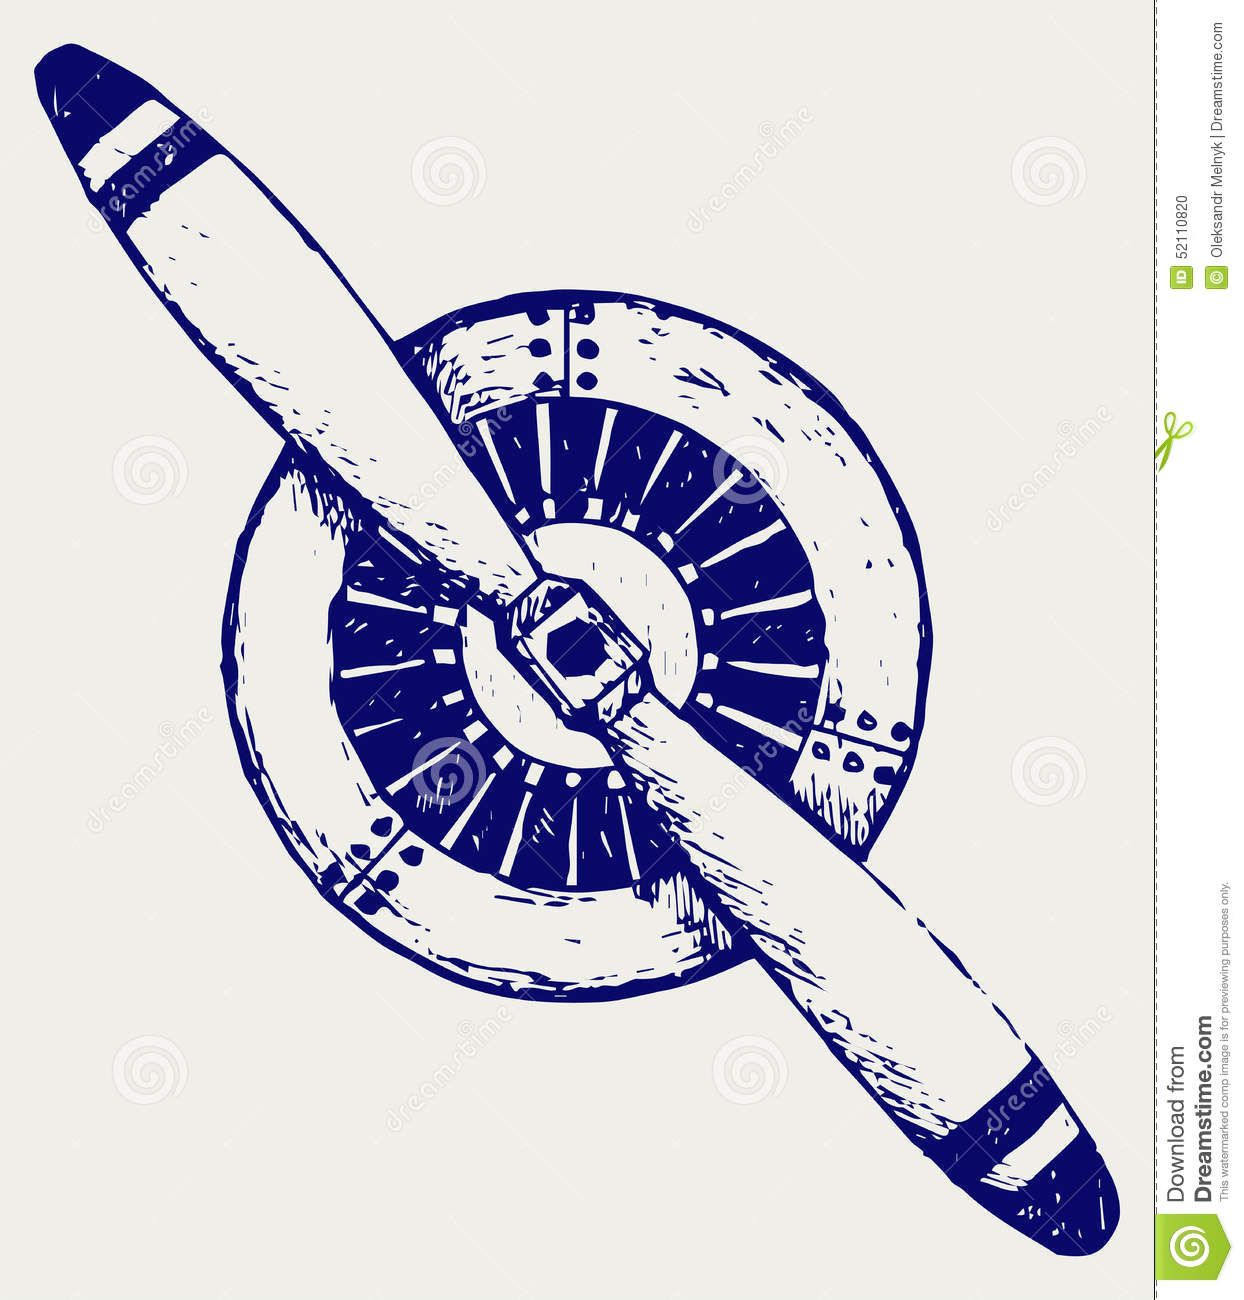 b7912f19e746 airplane propeller engine drawing - Google Search